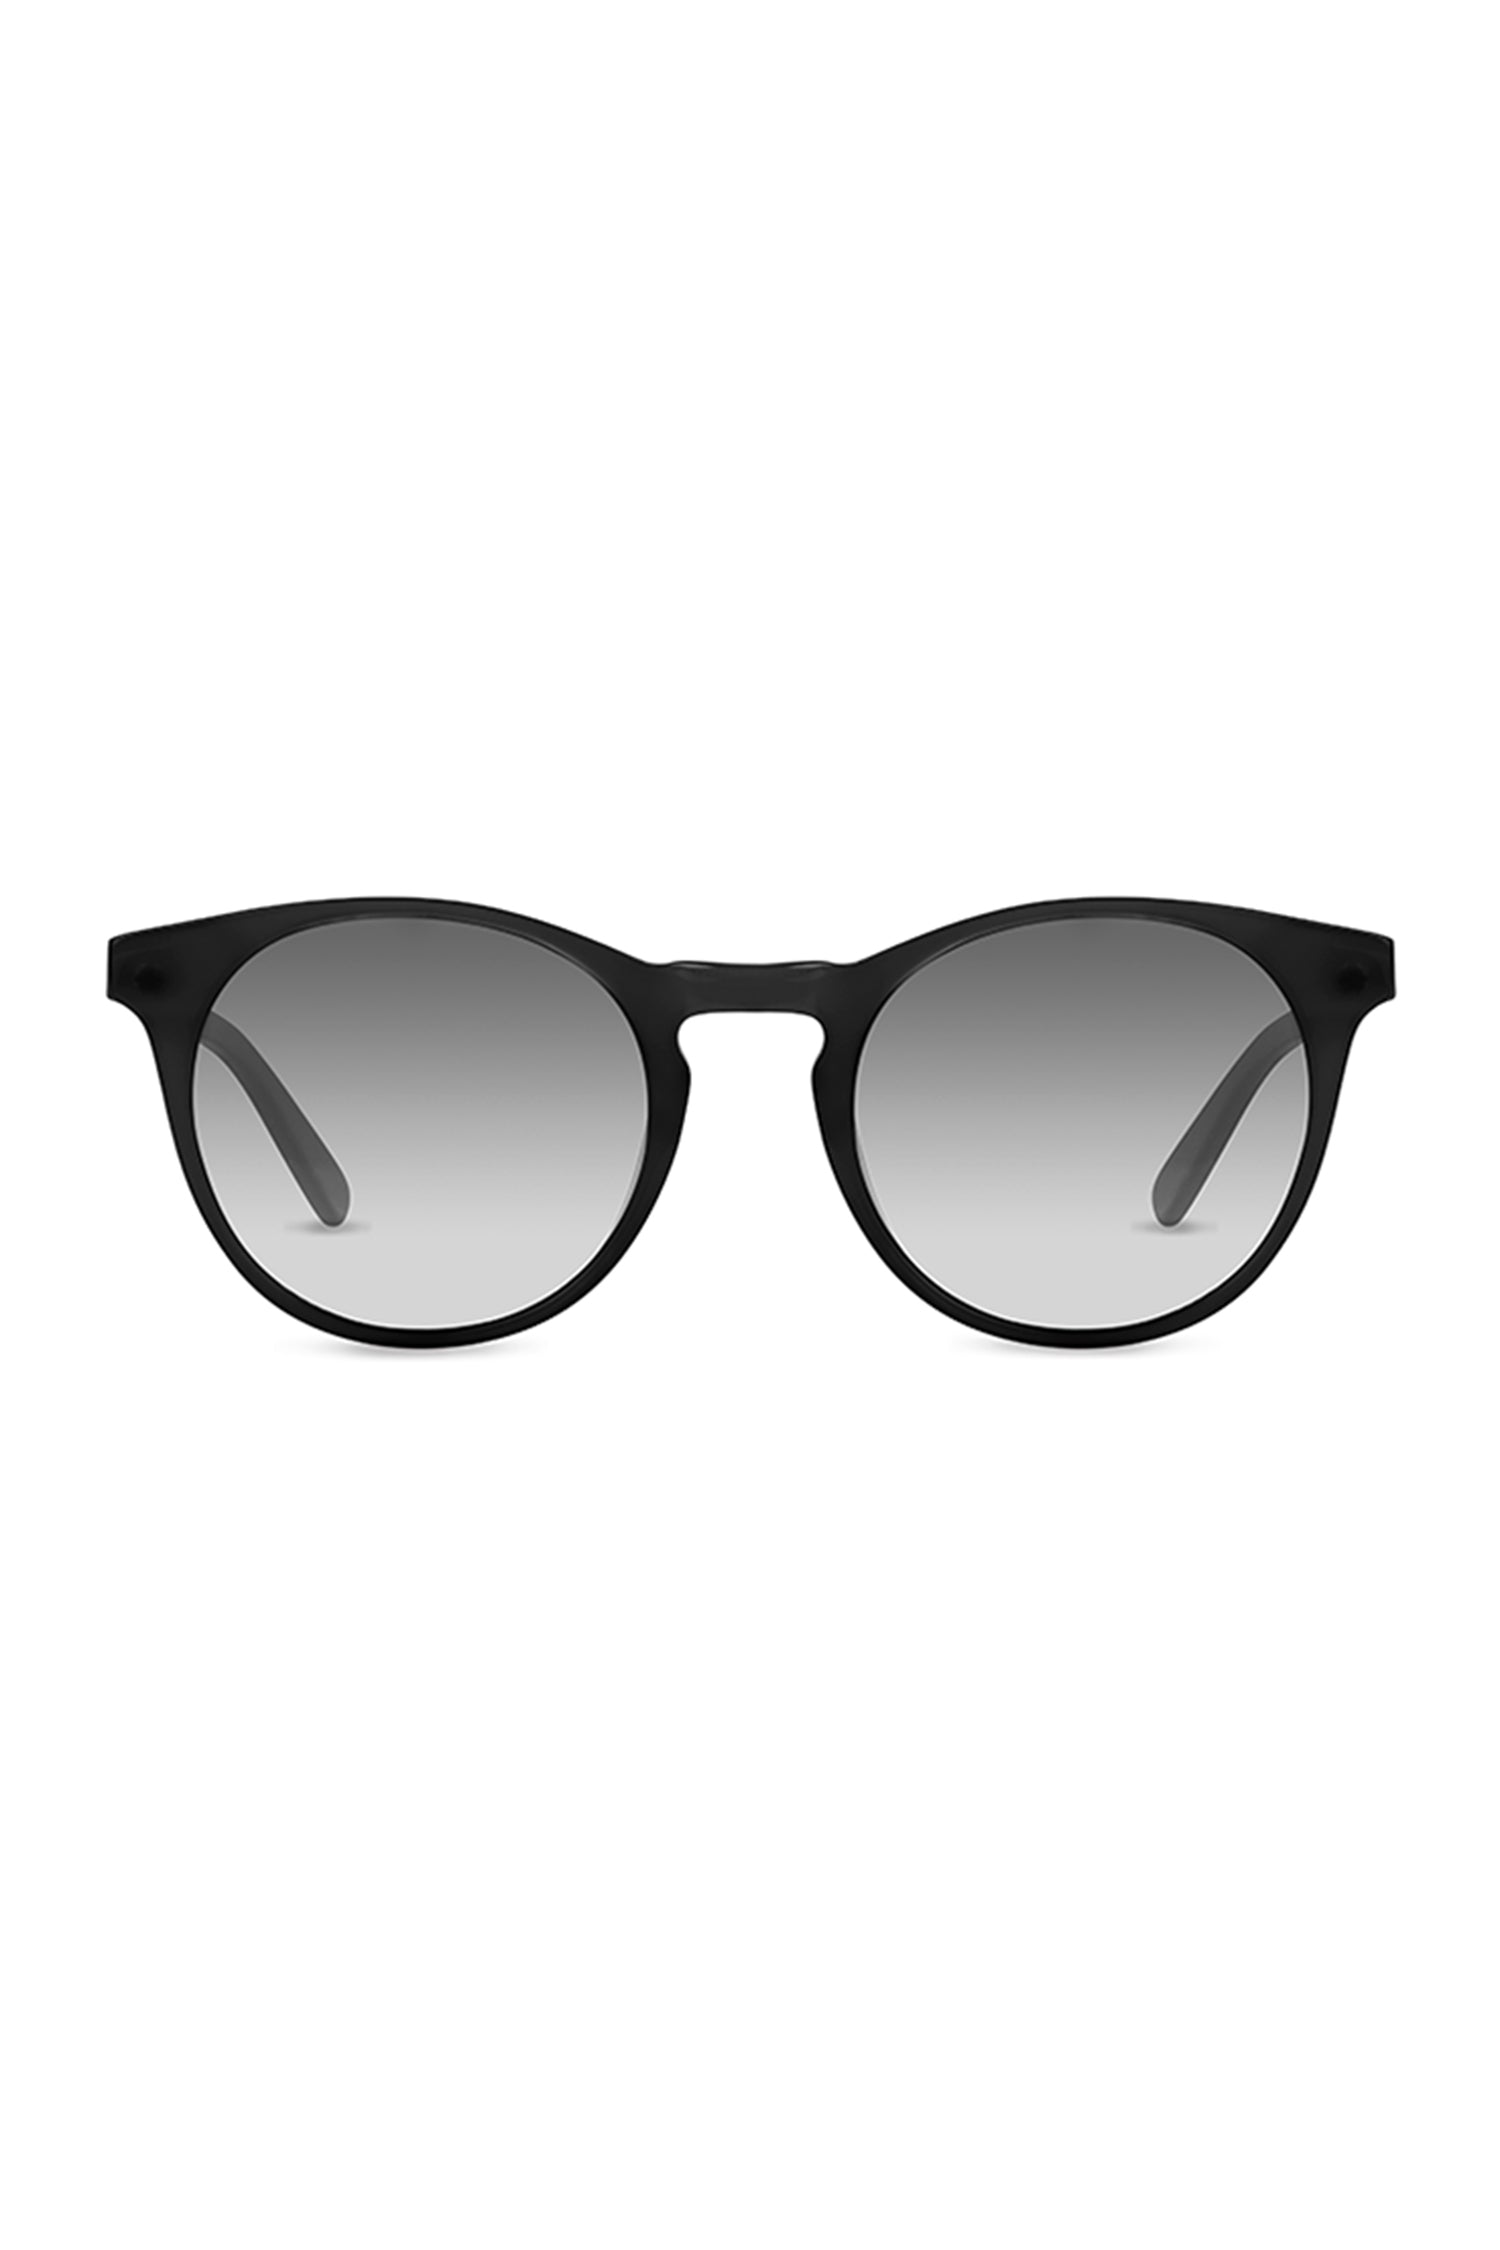 Percy - Matte Black with Grey to White Lenses